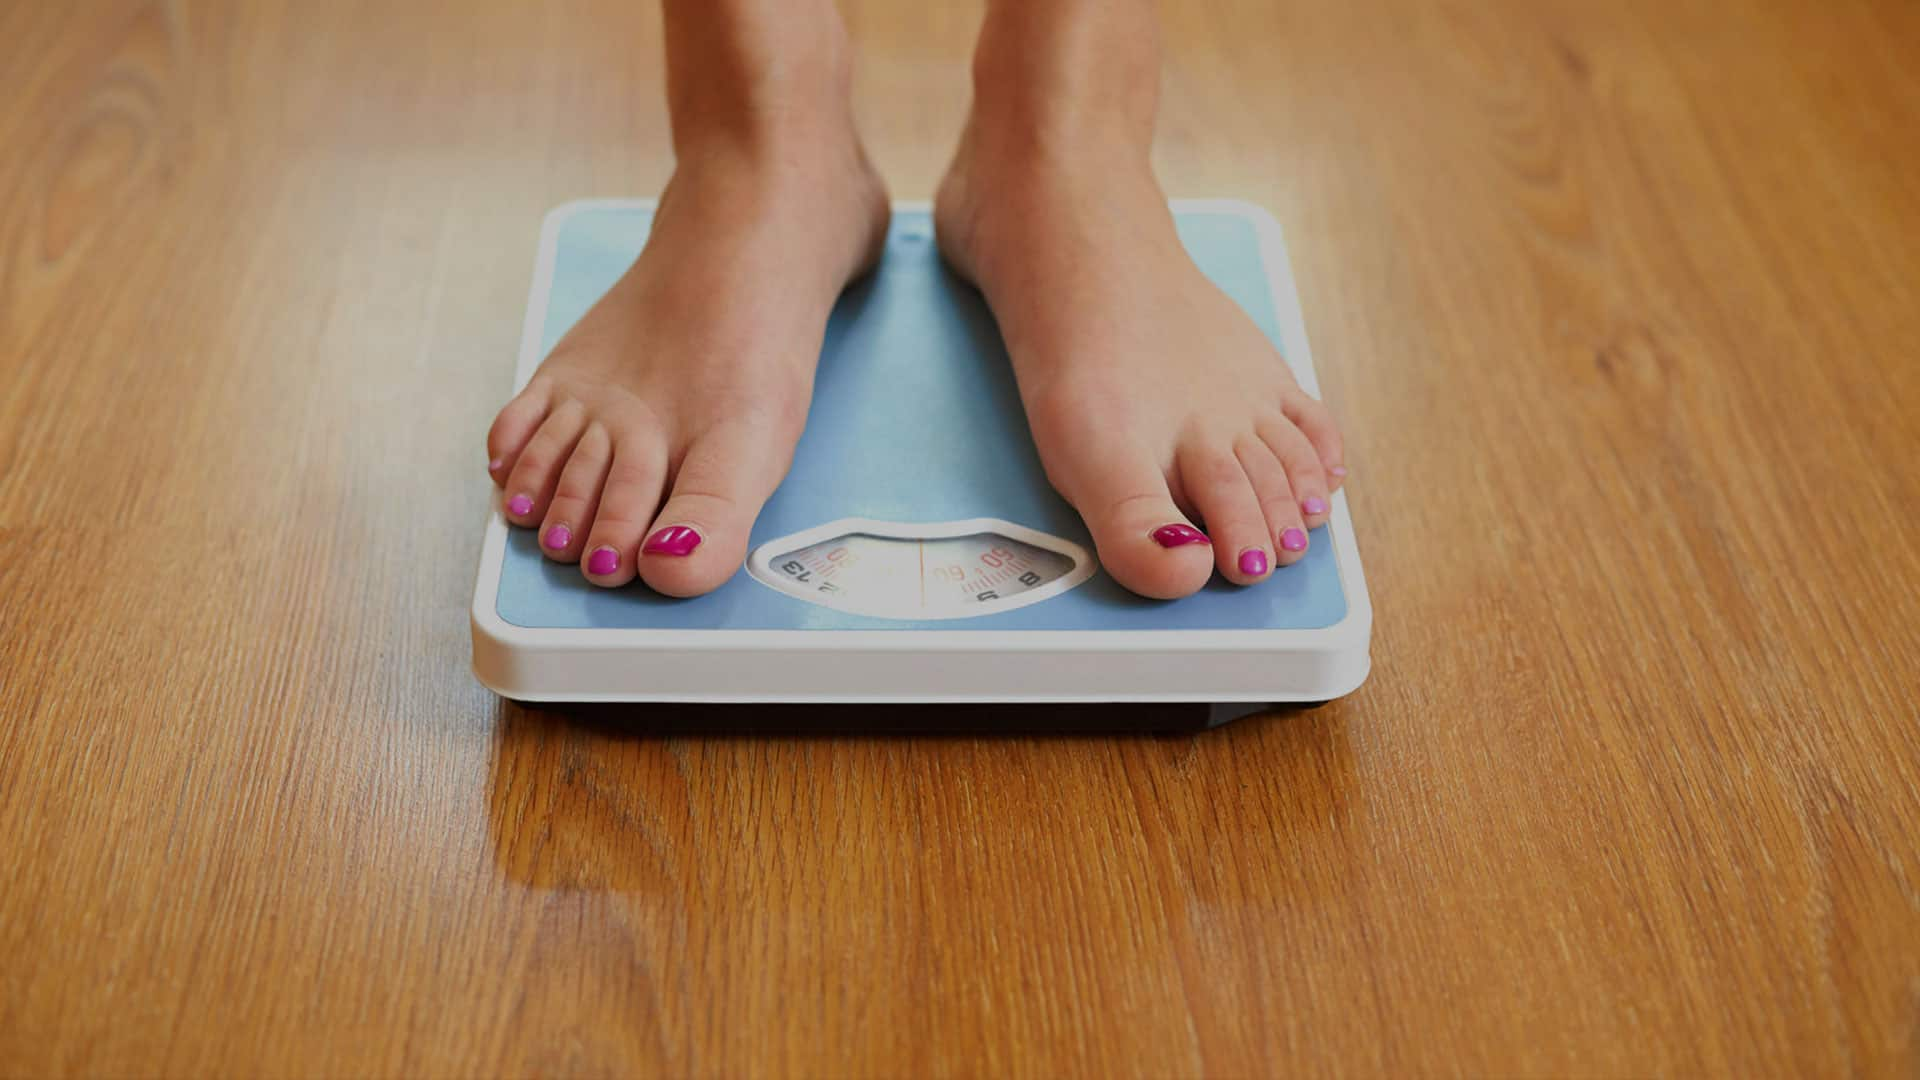 One Tip To Move The Scale